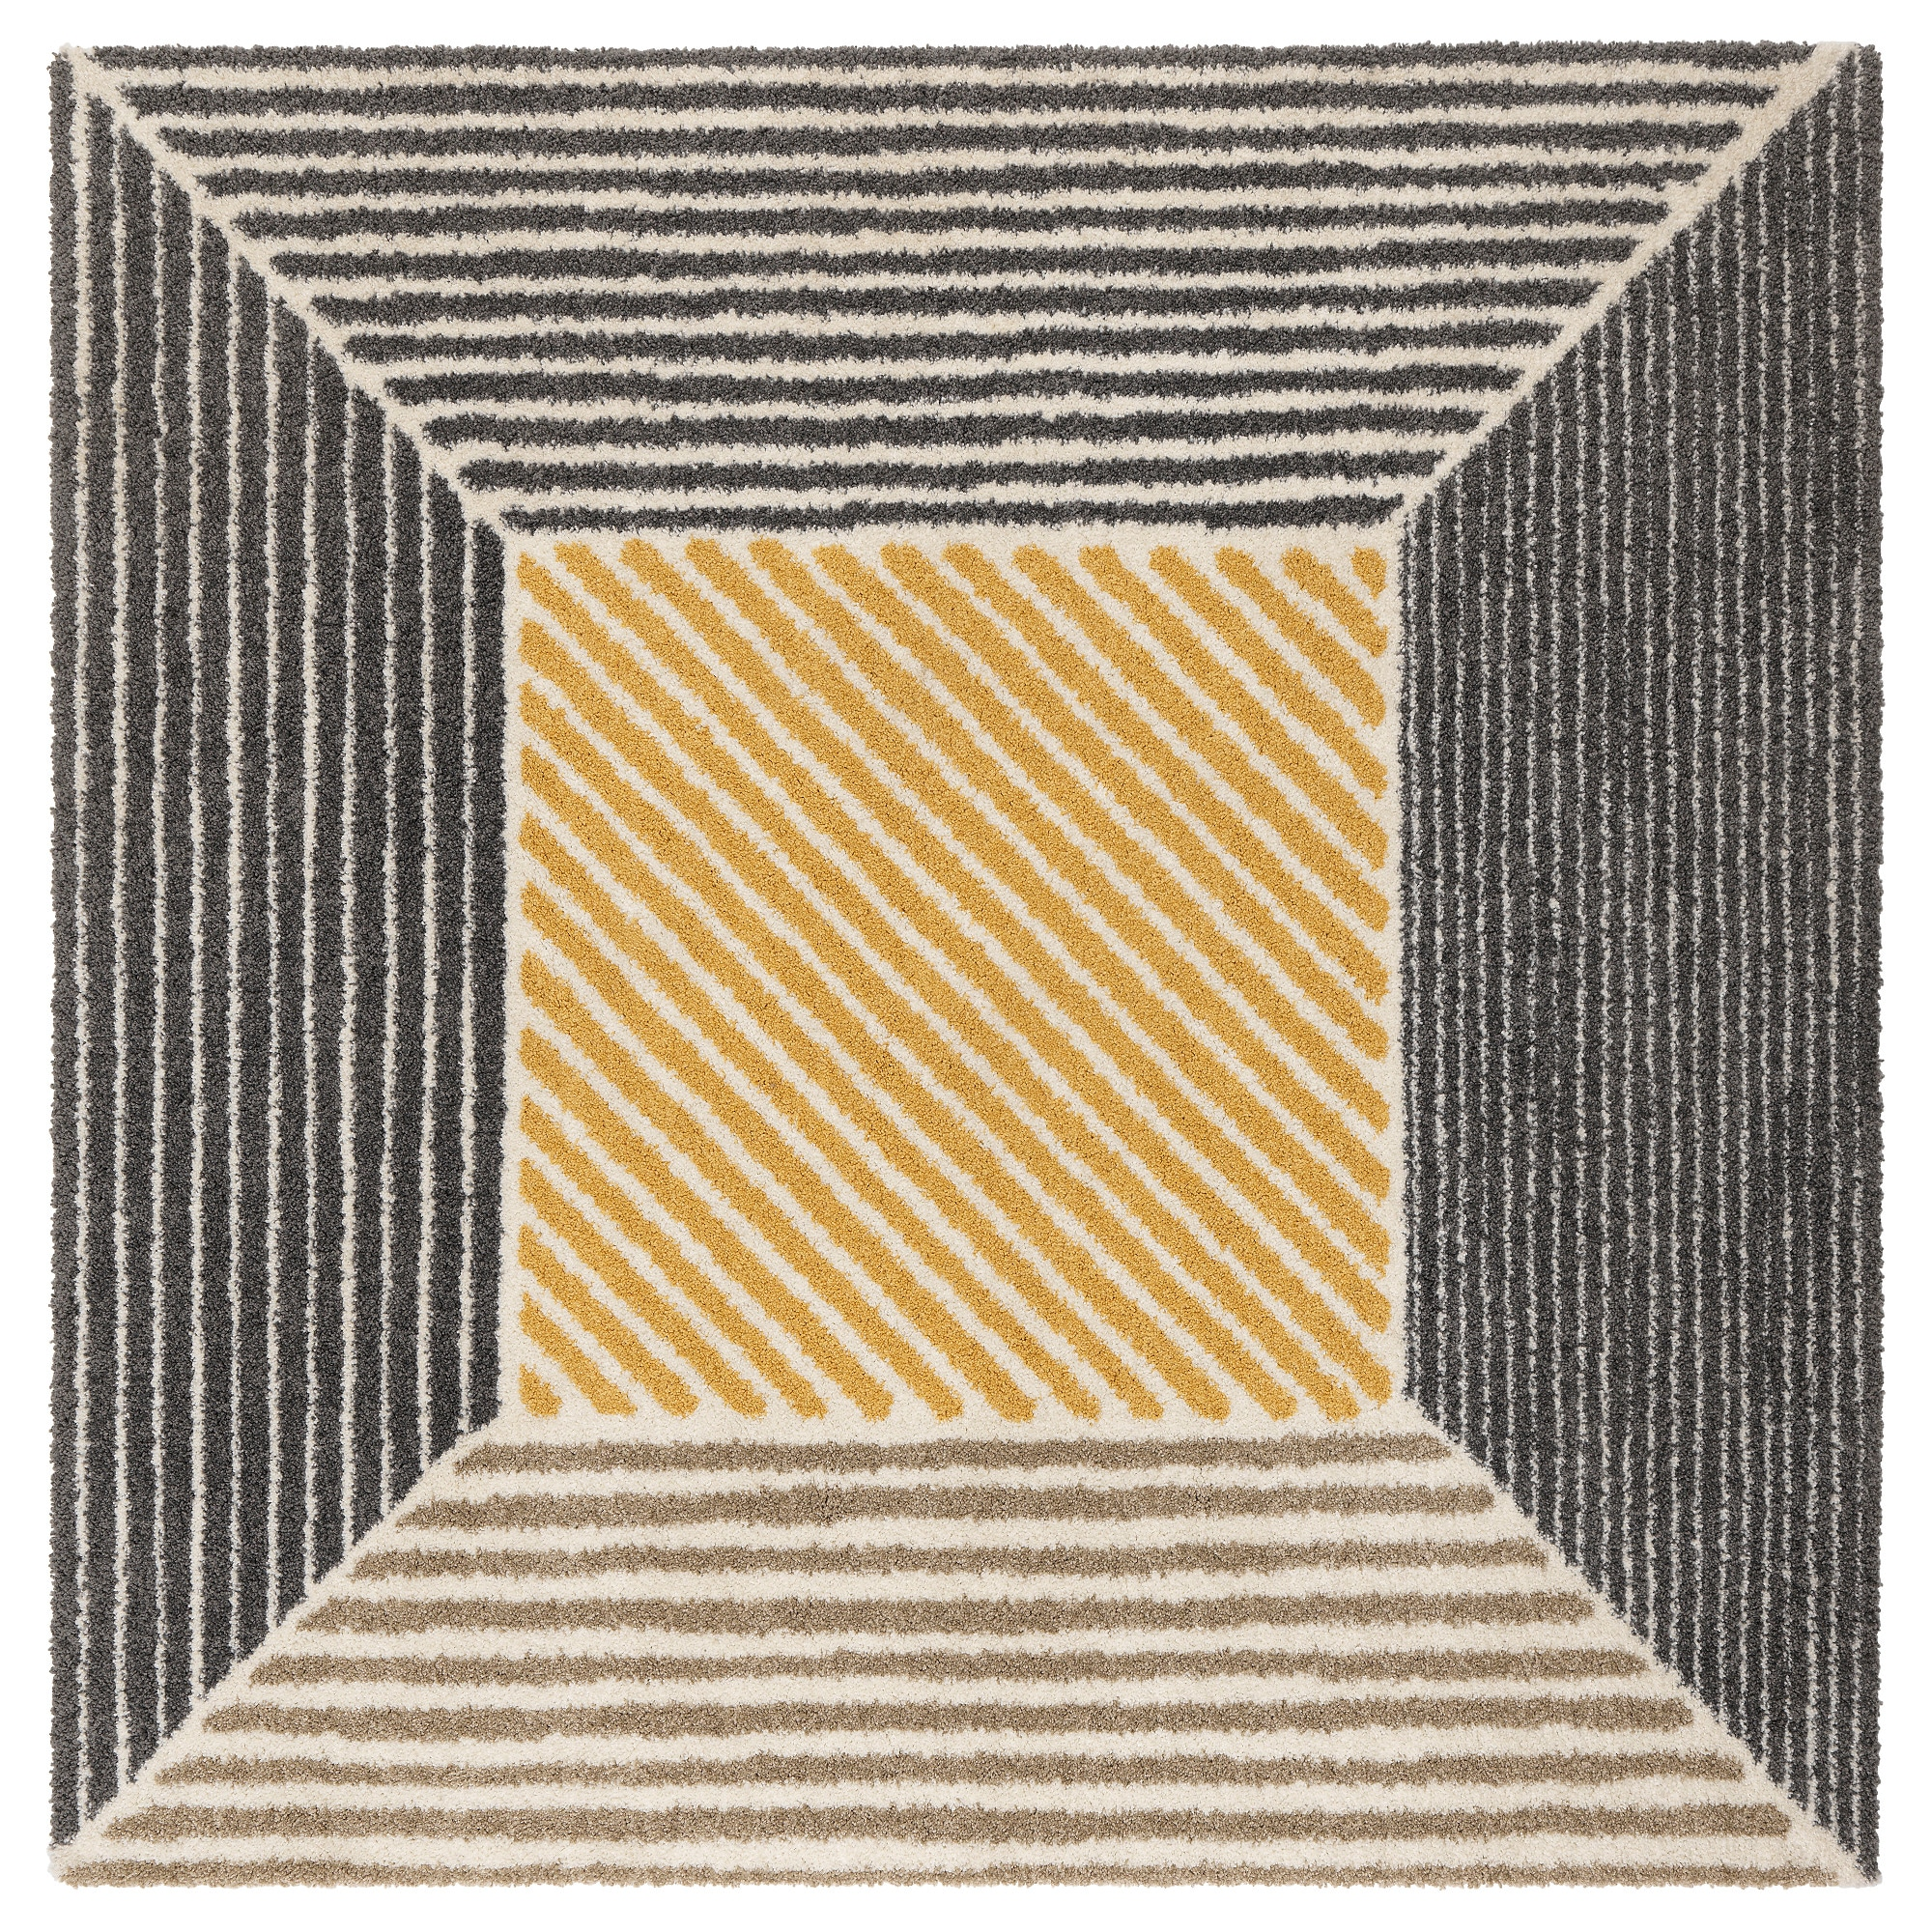 Birket Rug, High Pile, Yellow, Gray Length: 6 ' 7